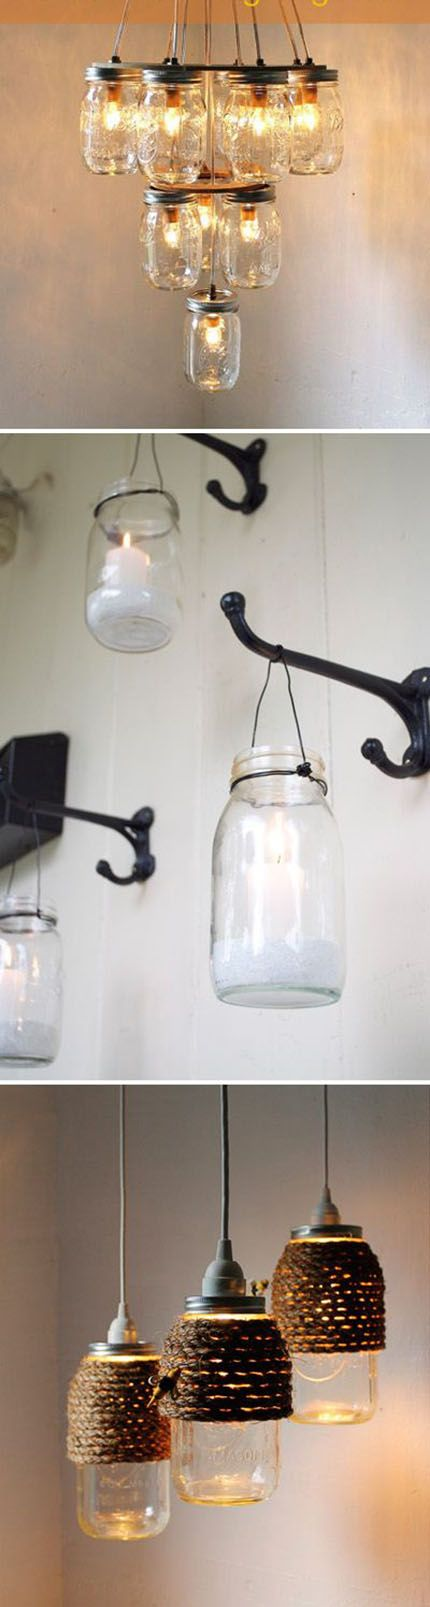 Great Jar Light Idea | DIY & Crafts Tutorials